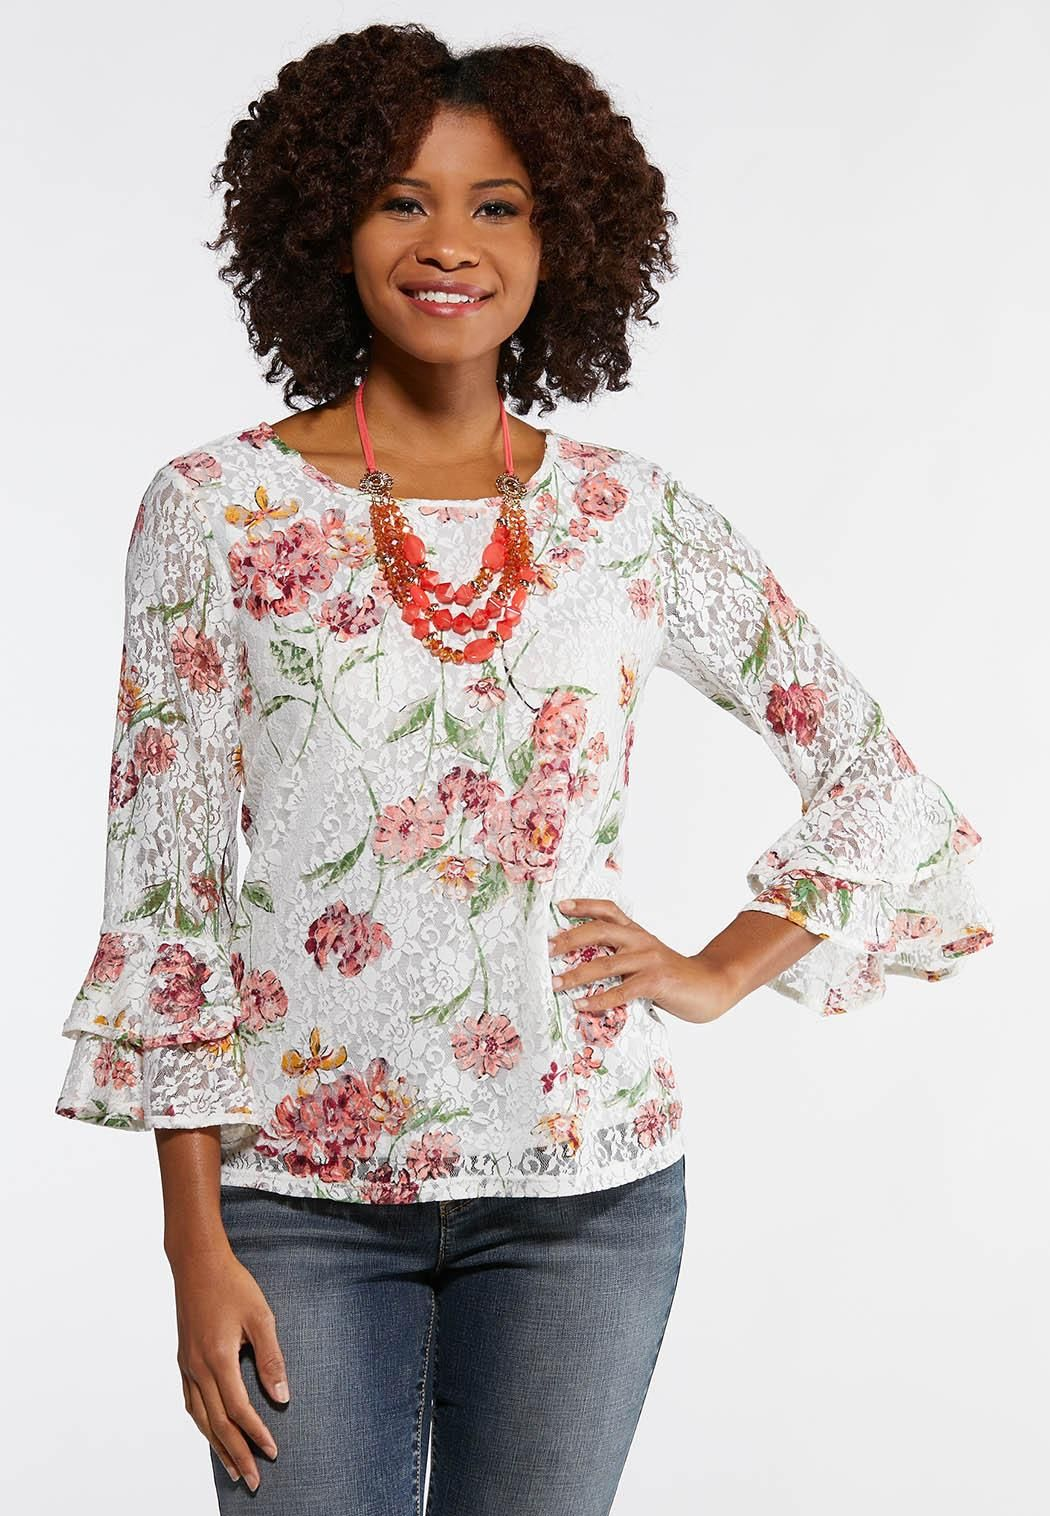 6cf204d7f88426 Floral Lace Top Tees & Amp ; Knit Tops Cato Fashions in 2019 ...